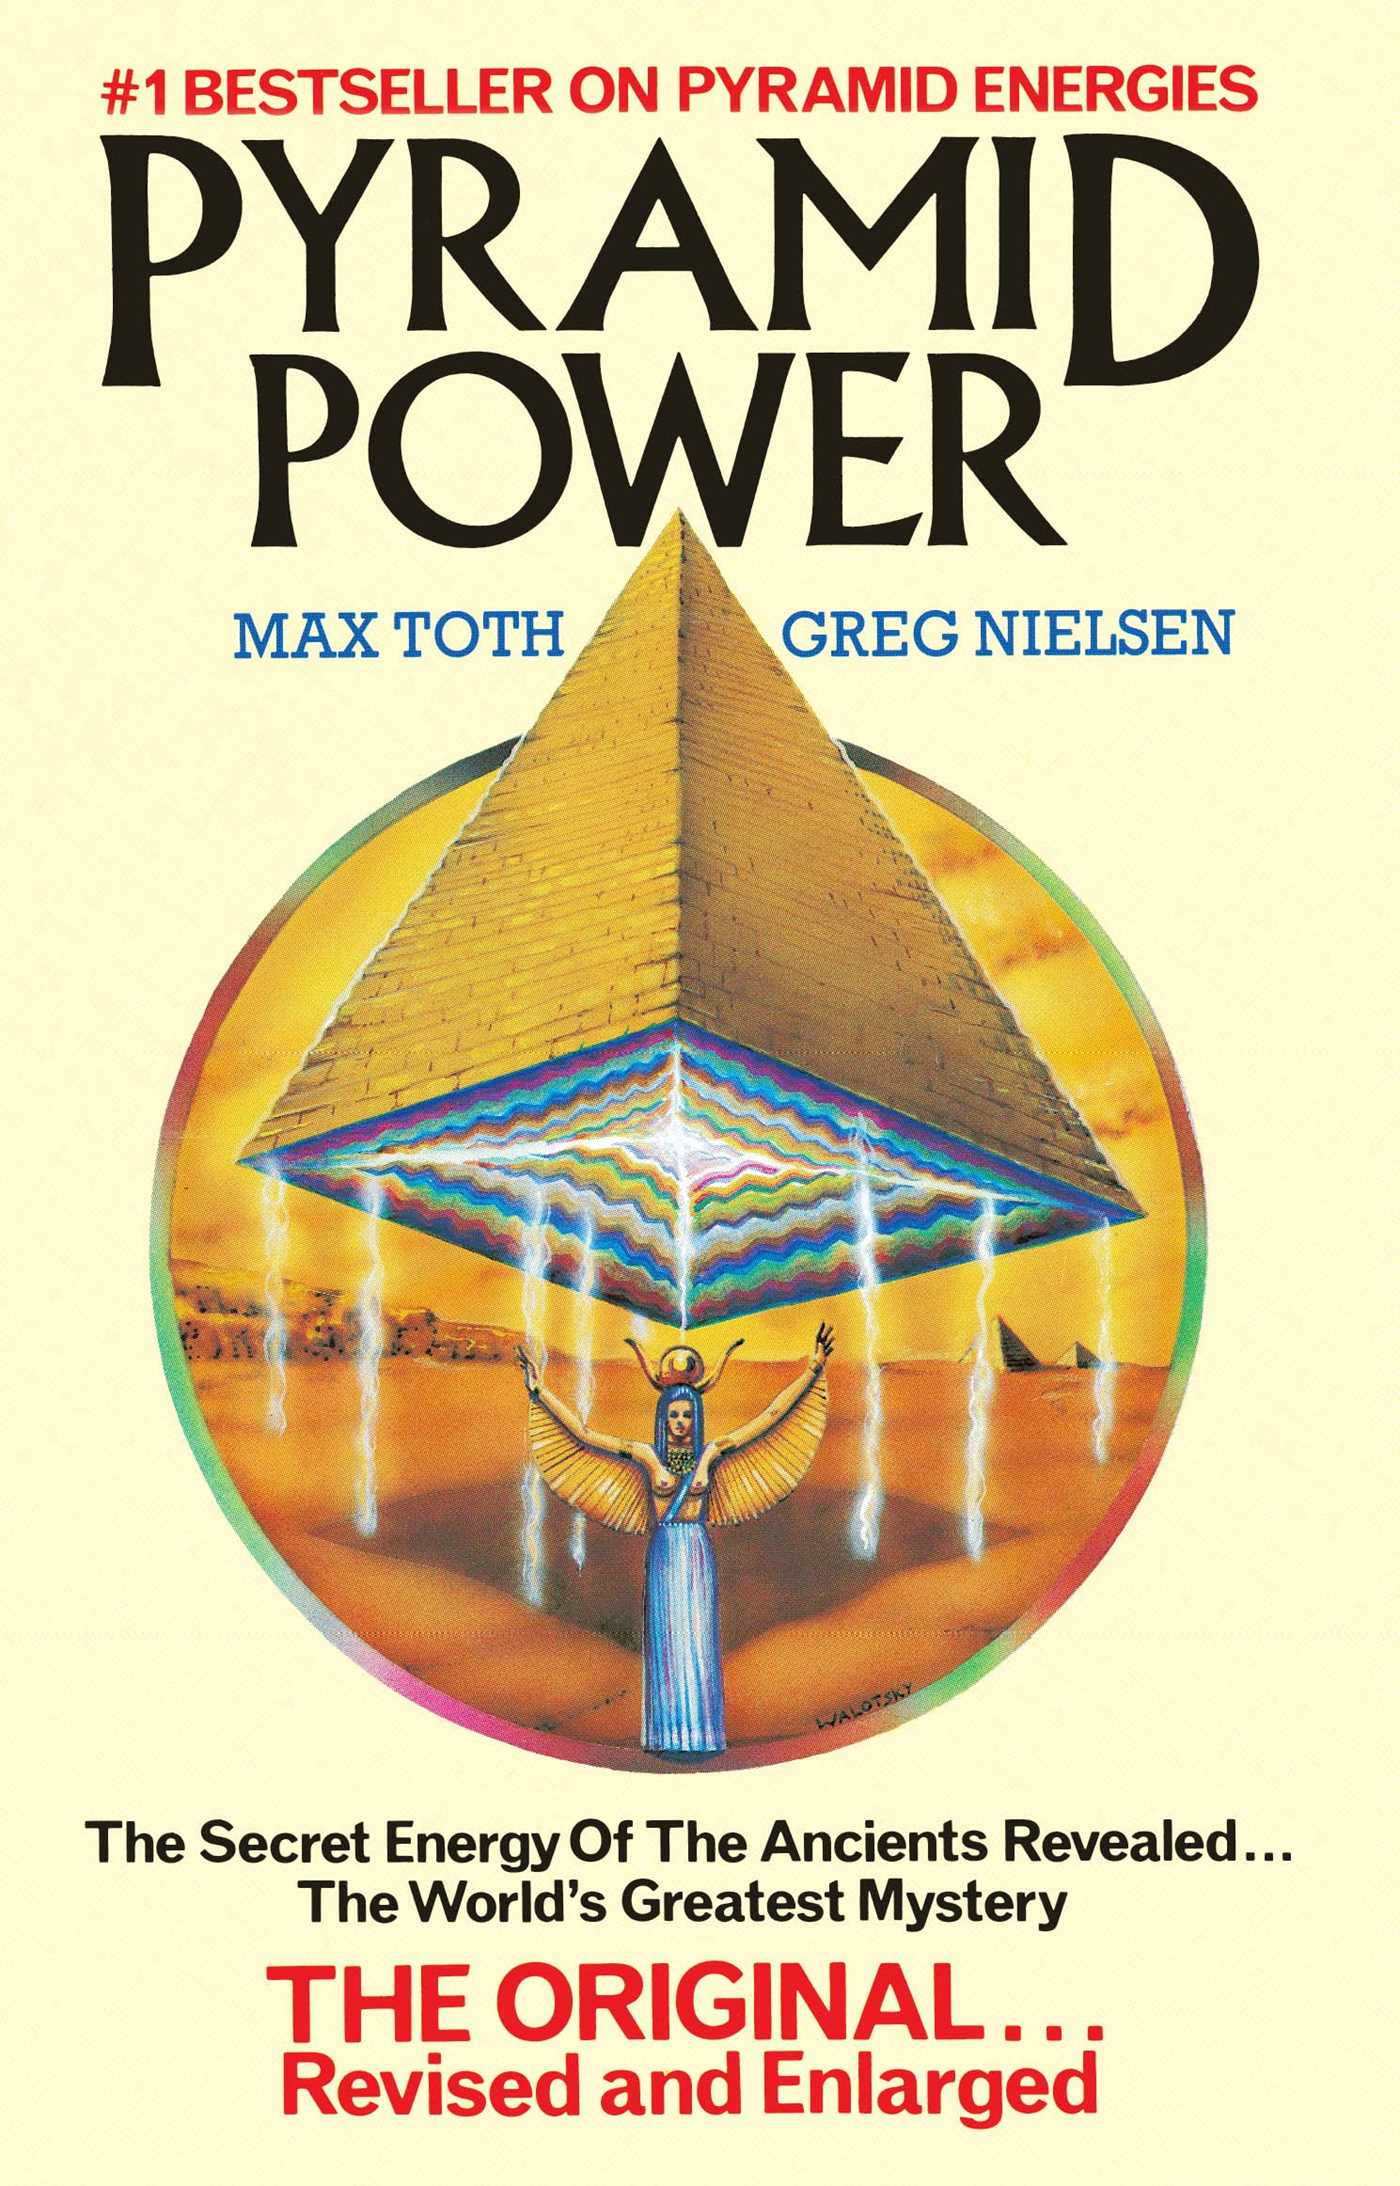 The Energy Detective >> Pyramid Power | Book by Max Toth, Greg Nielsen | Official ...